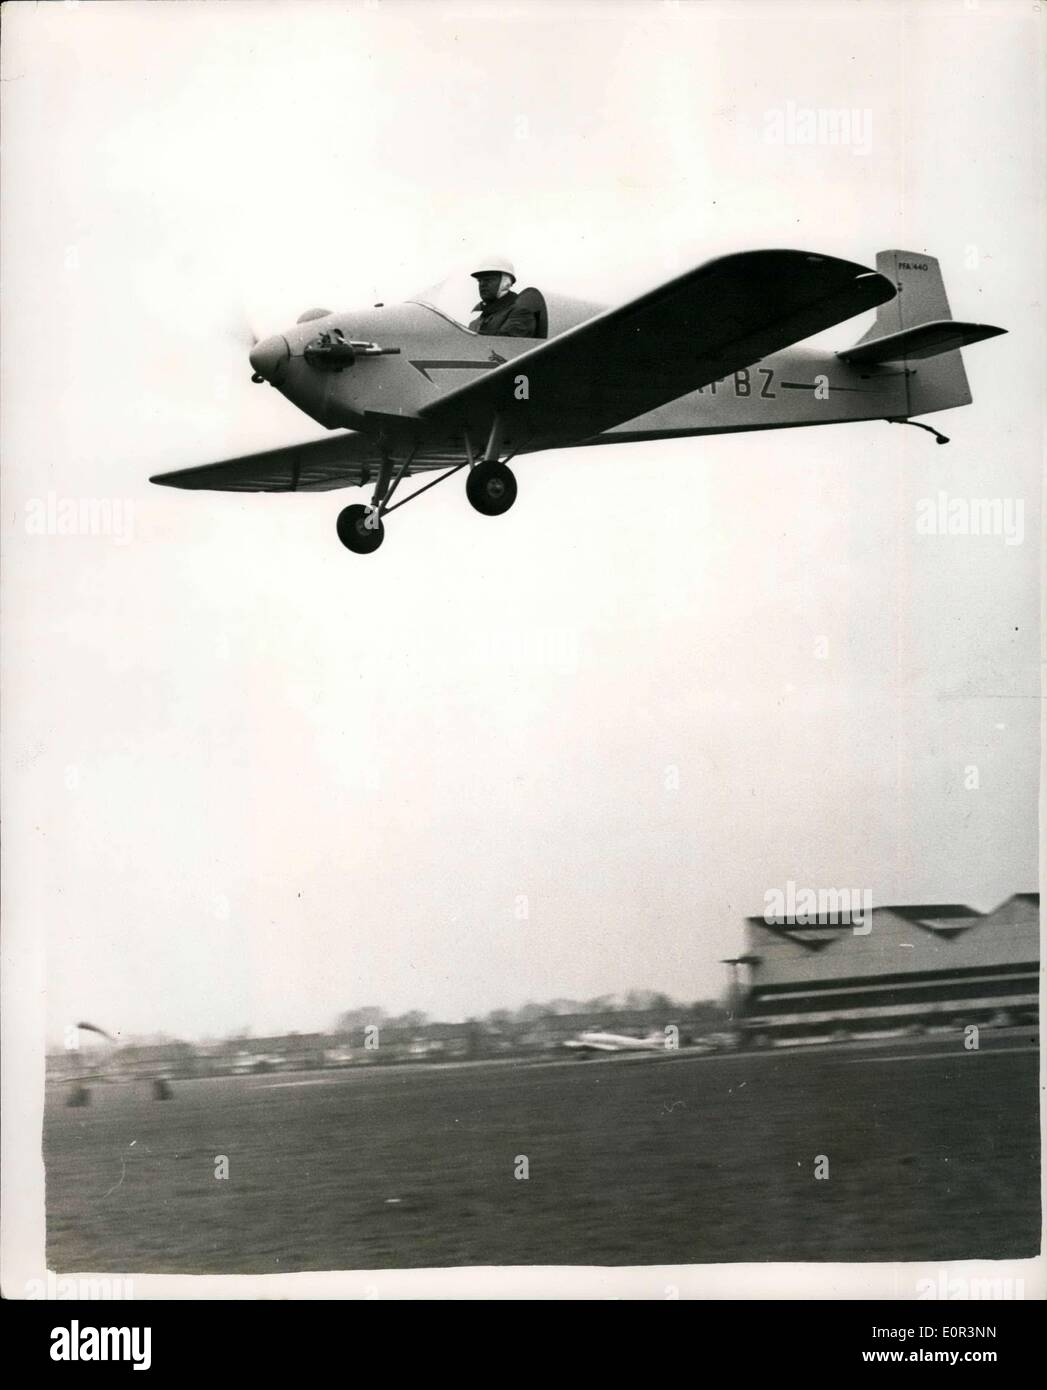 Jan. 02, 1958 - The Do it yourself plane takes the air on its first trial flight; A plane that will fly from Croydon Stock Photo